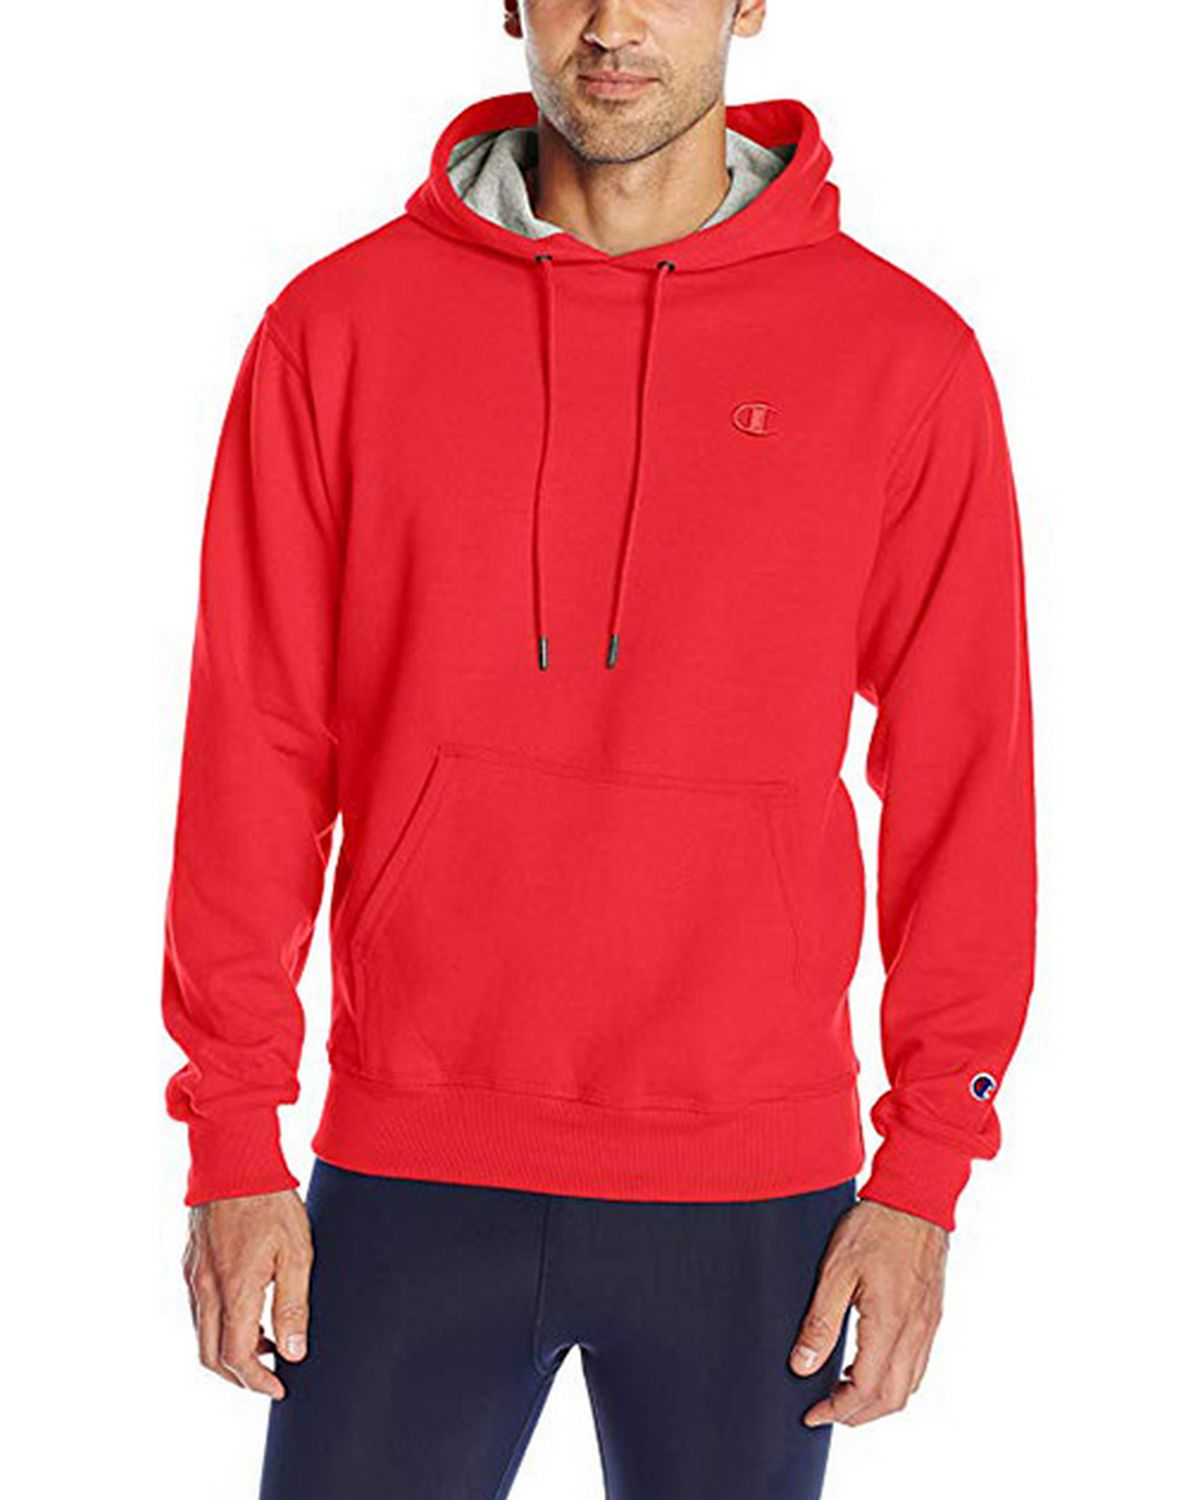 Champion S0889 Mens Fleece Pullover Hoodie - Team Red Scarlet - XL S0889